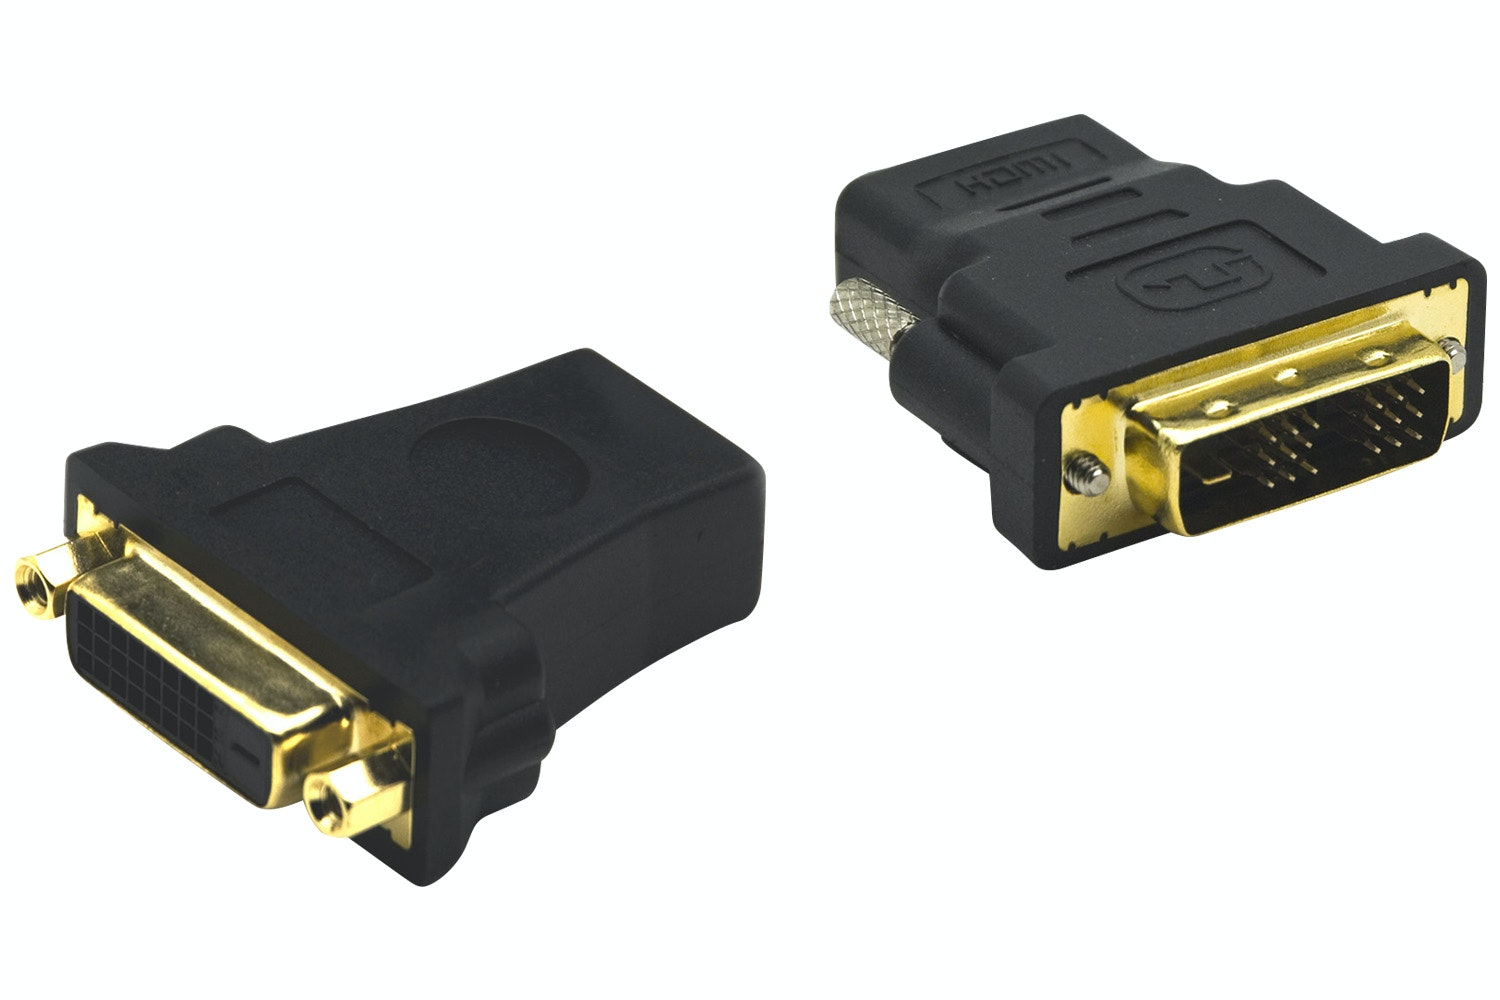 G&BL 6003 HDMI-A Female to DVI/D Male Adapter